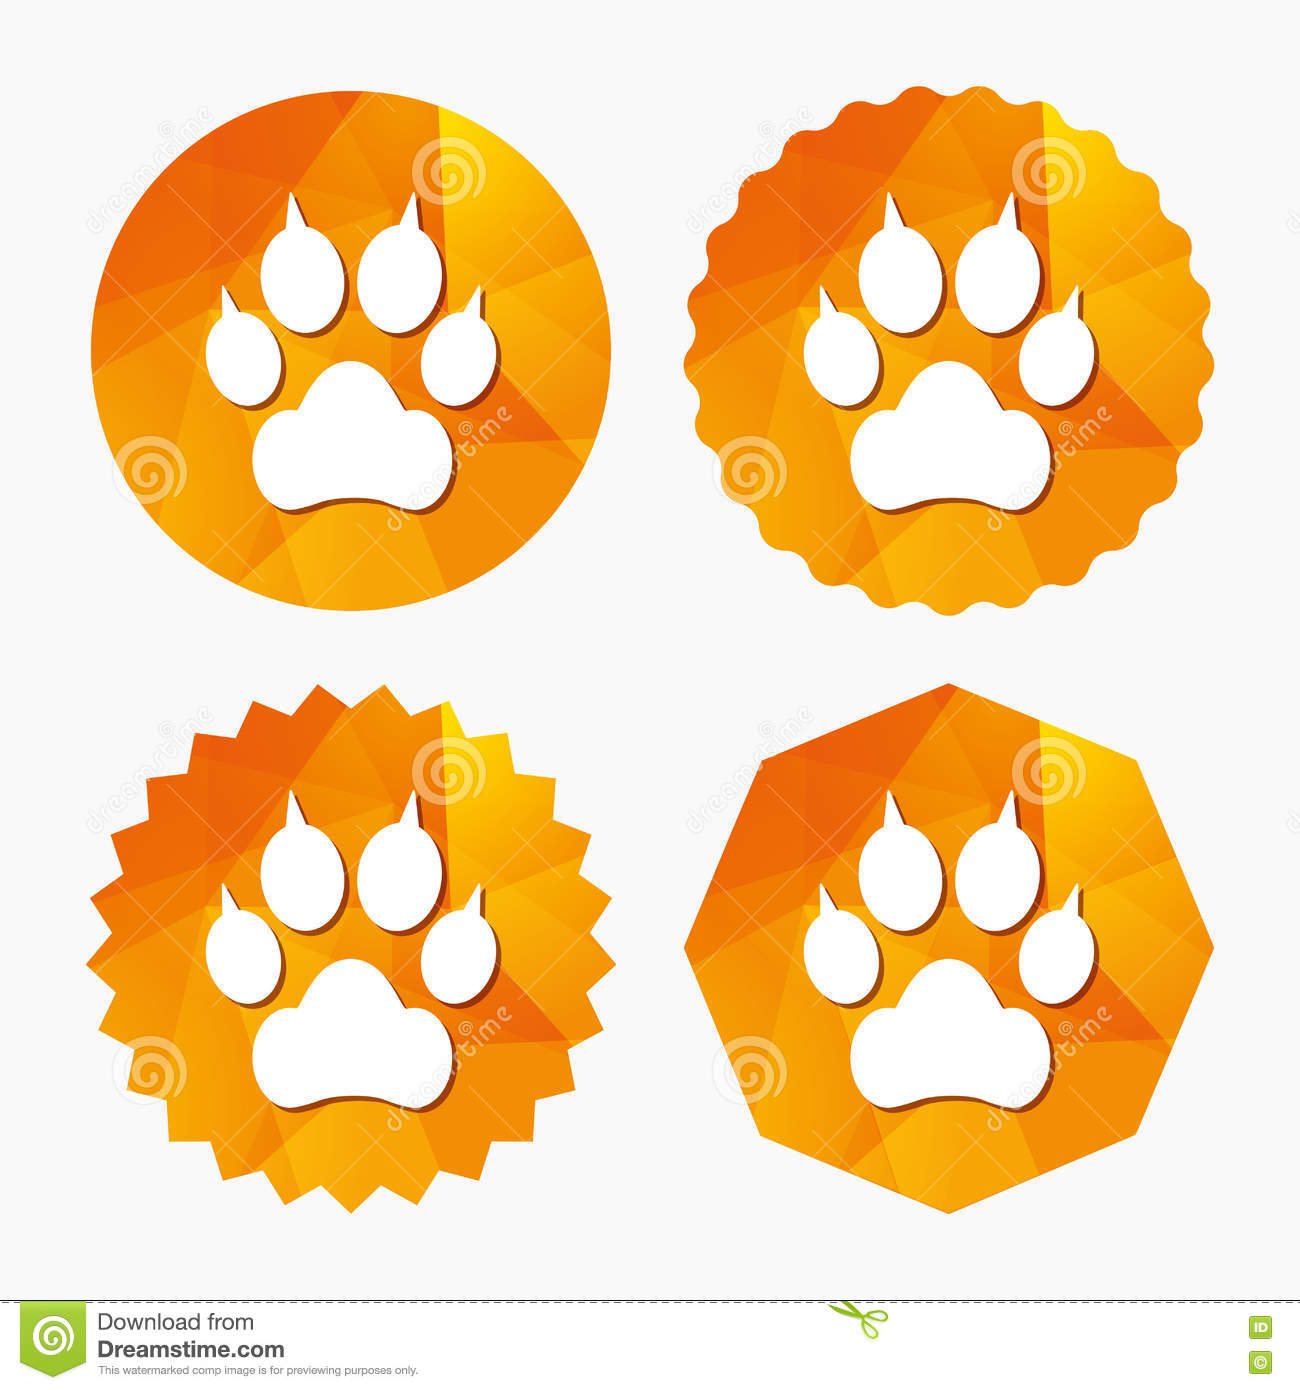 Dog paw symbol images symbol and sign ideas dog paw with clutches sign icon pets symbol stock illustration dog paw with clutches sign icon biocorpaavc